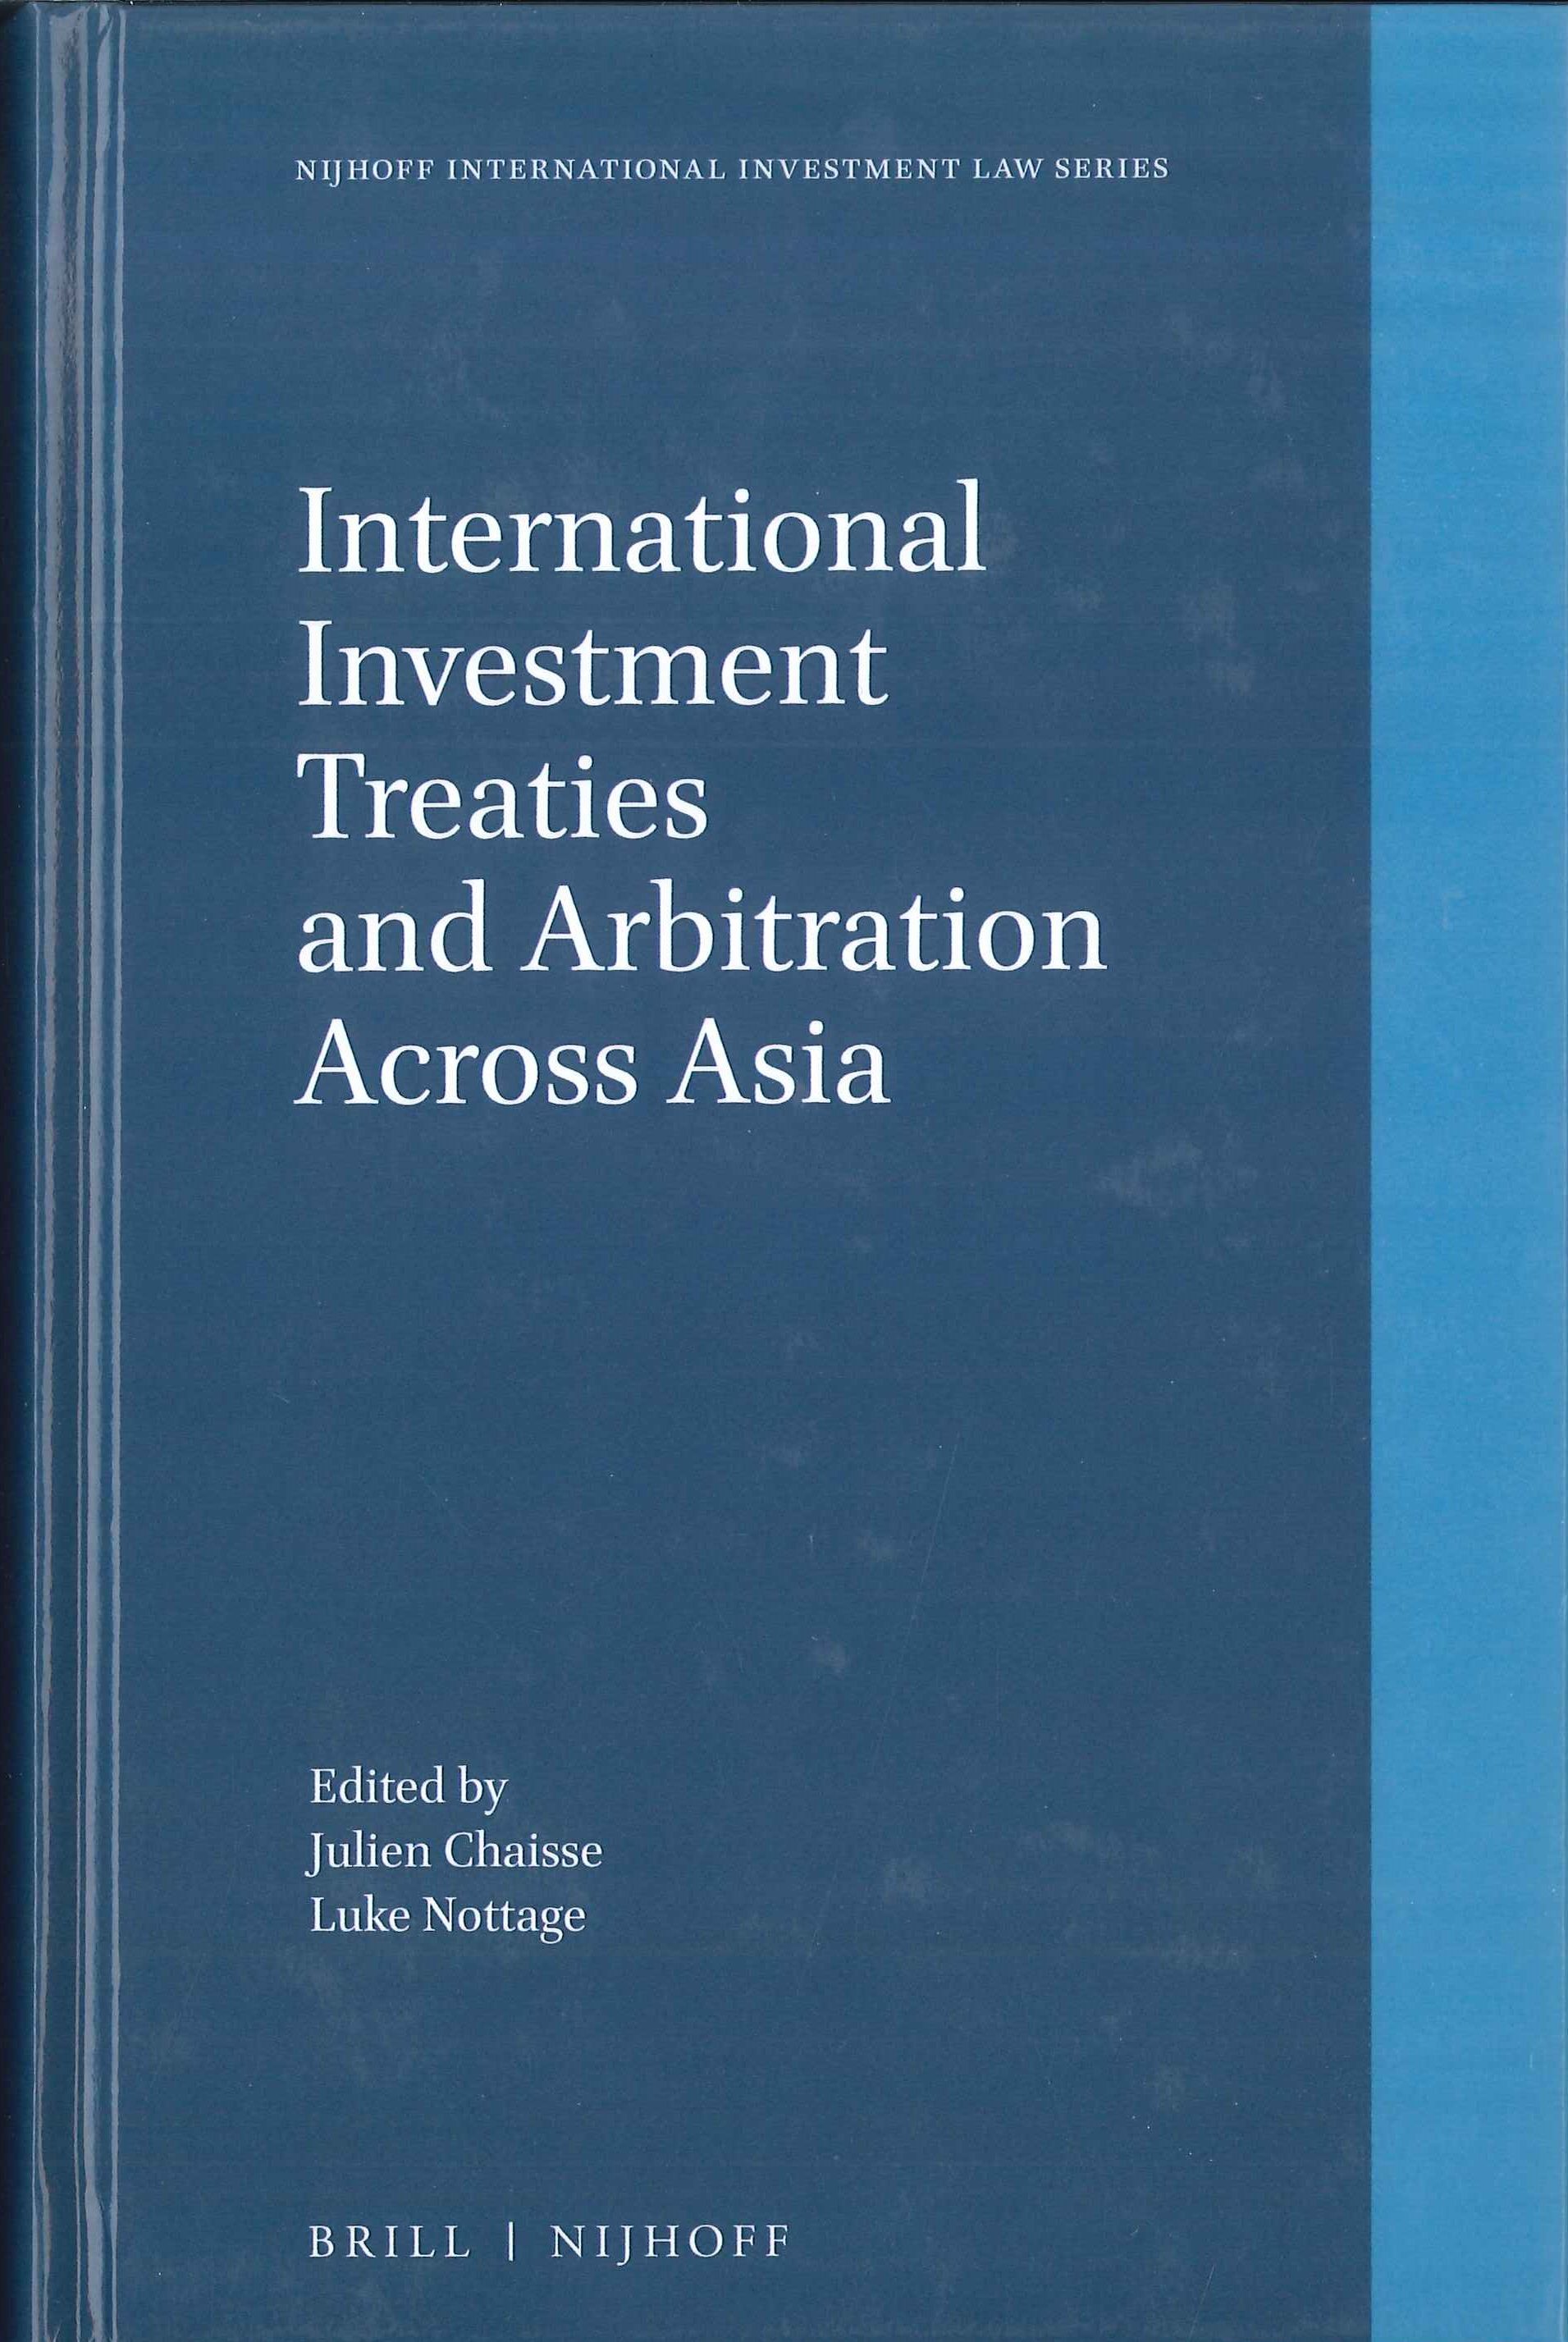 International investment treaties and arbitration across Asia